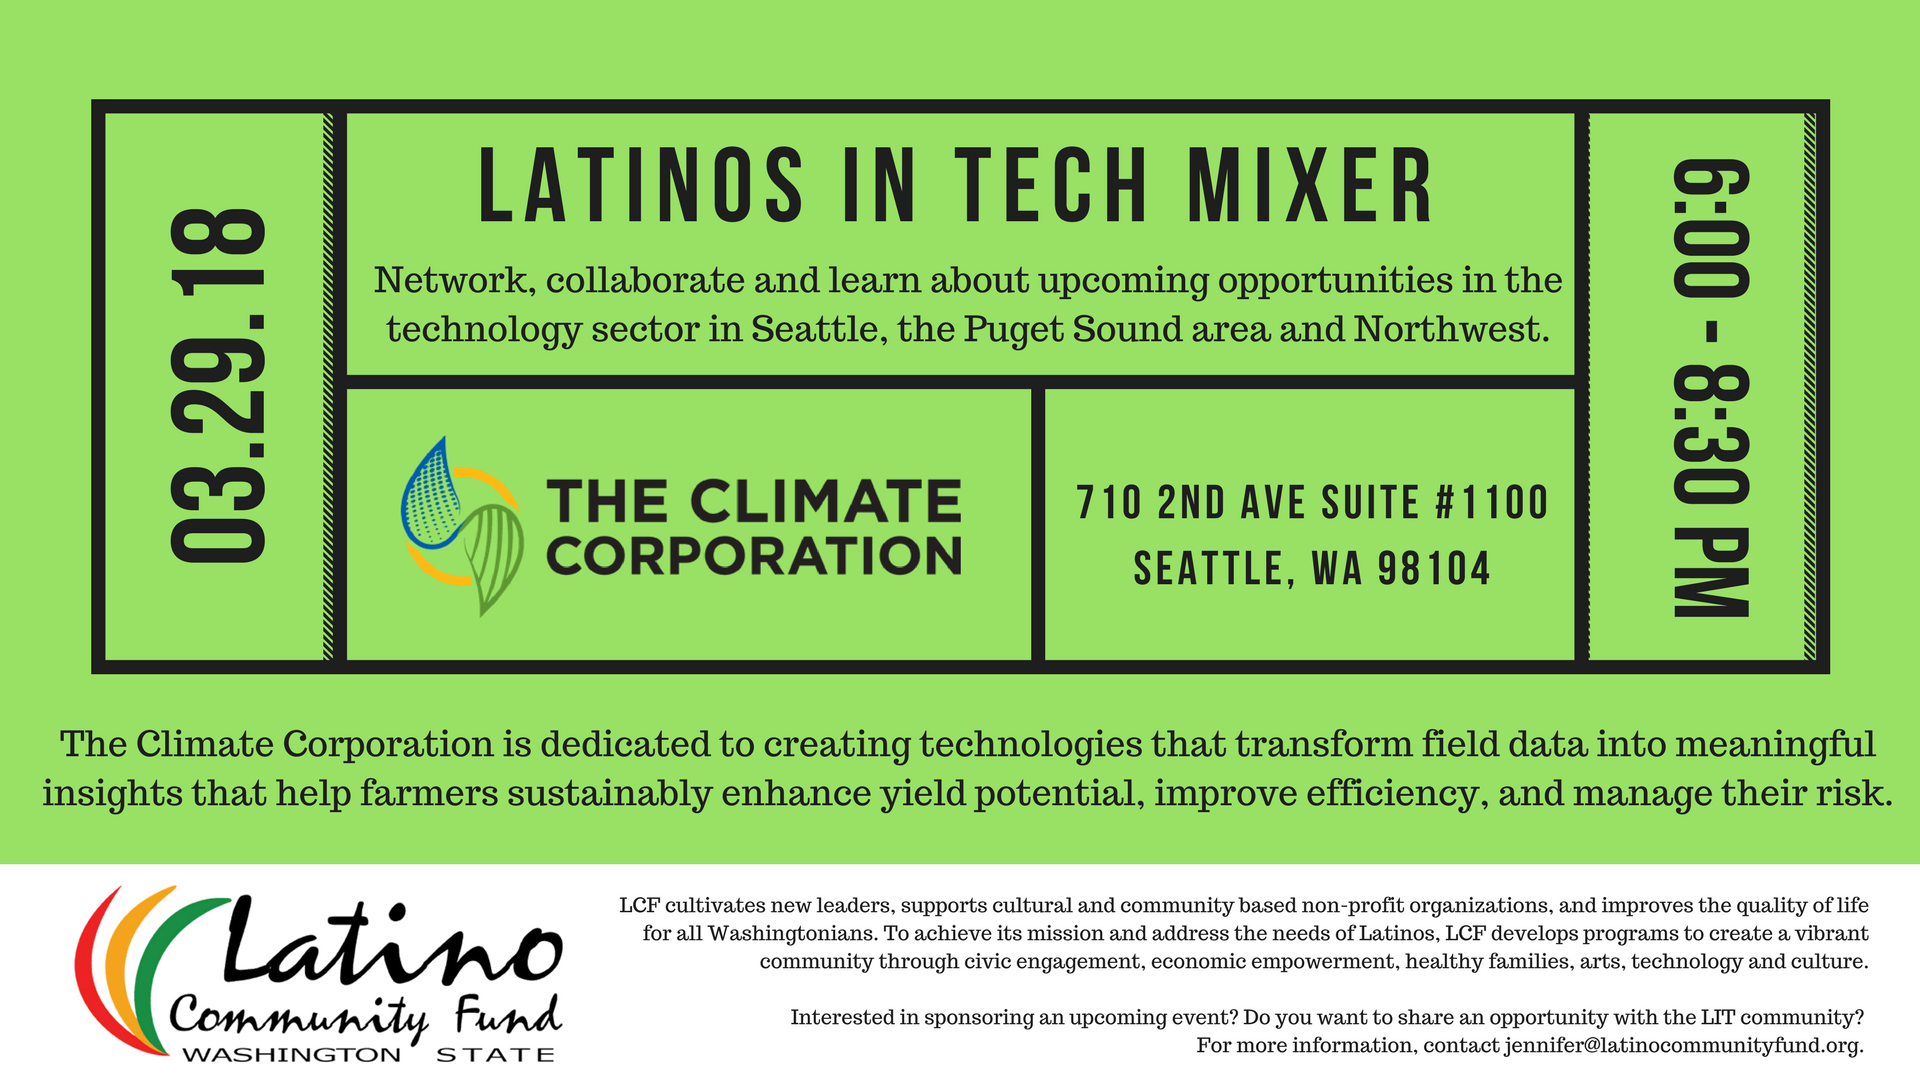 032918_LCF_Latinos_in_Tech_Mixer_sponsored_by_Climate_Corporation.png